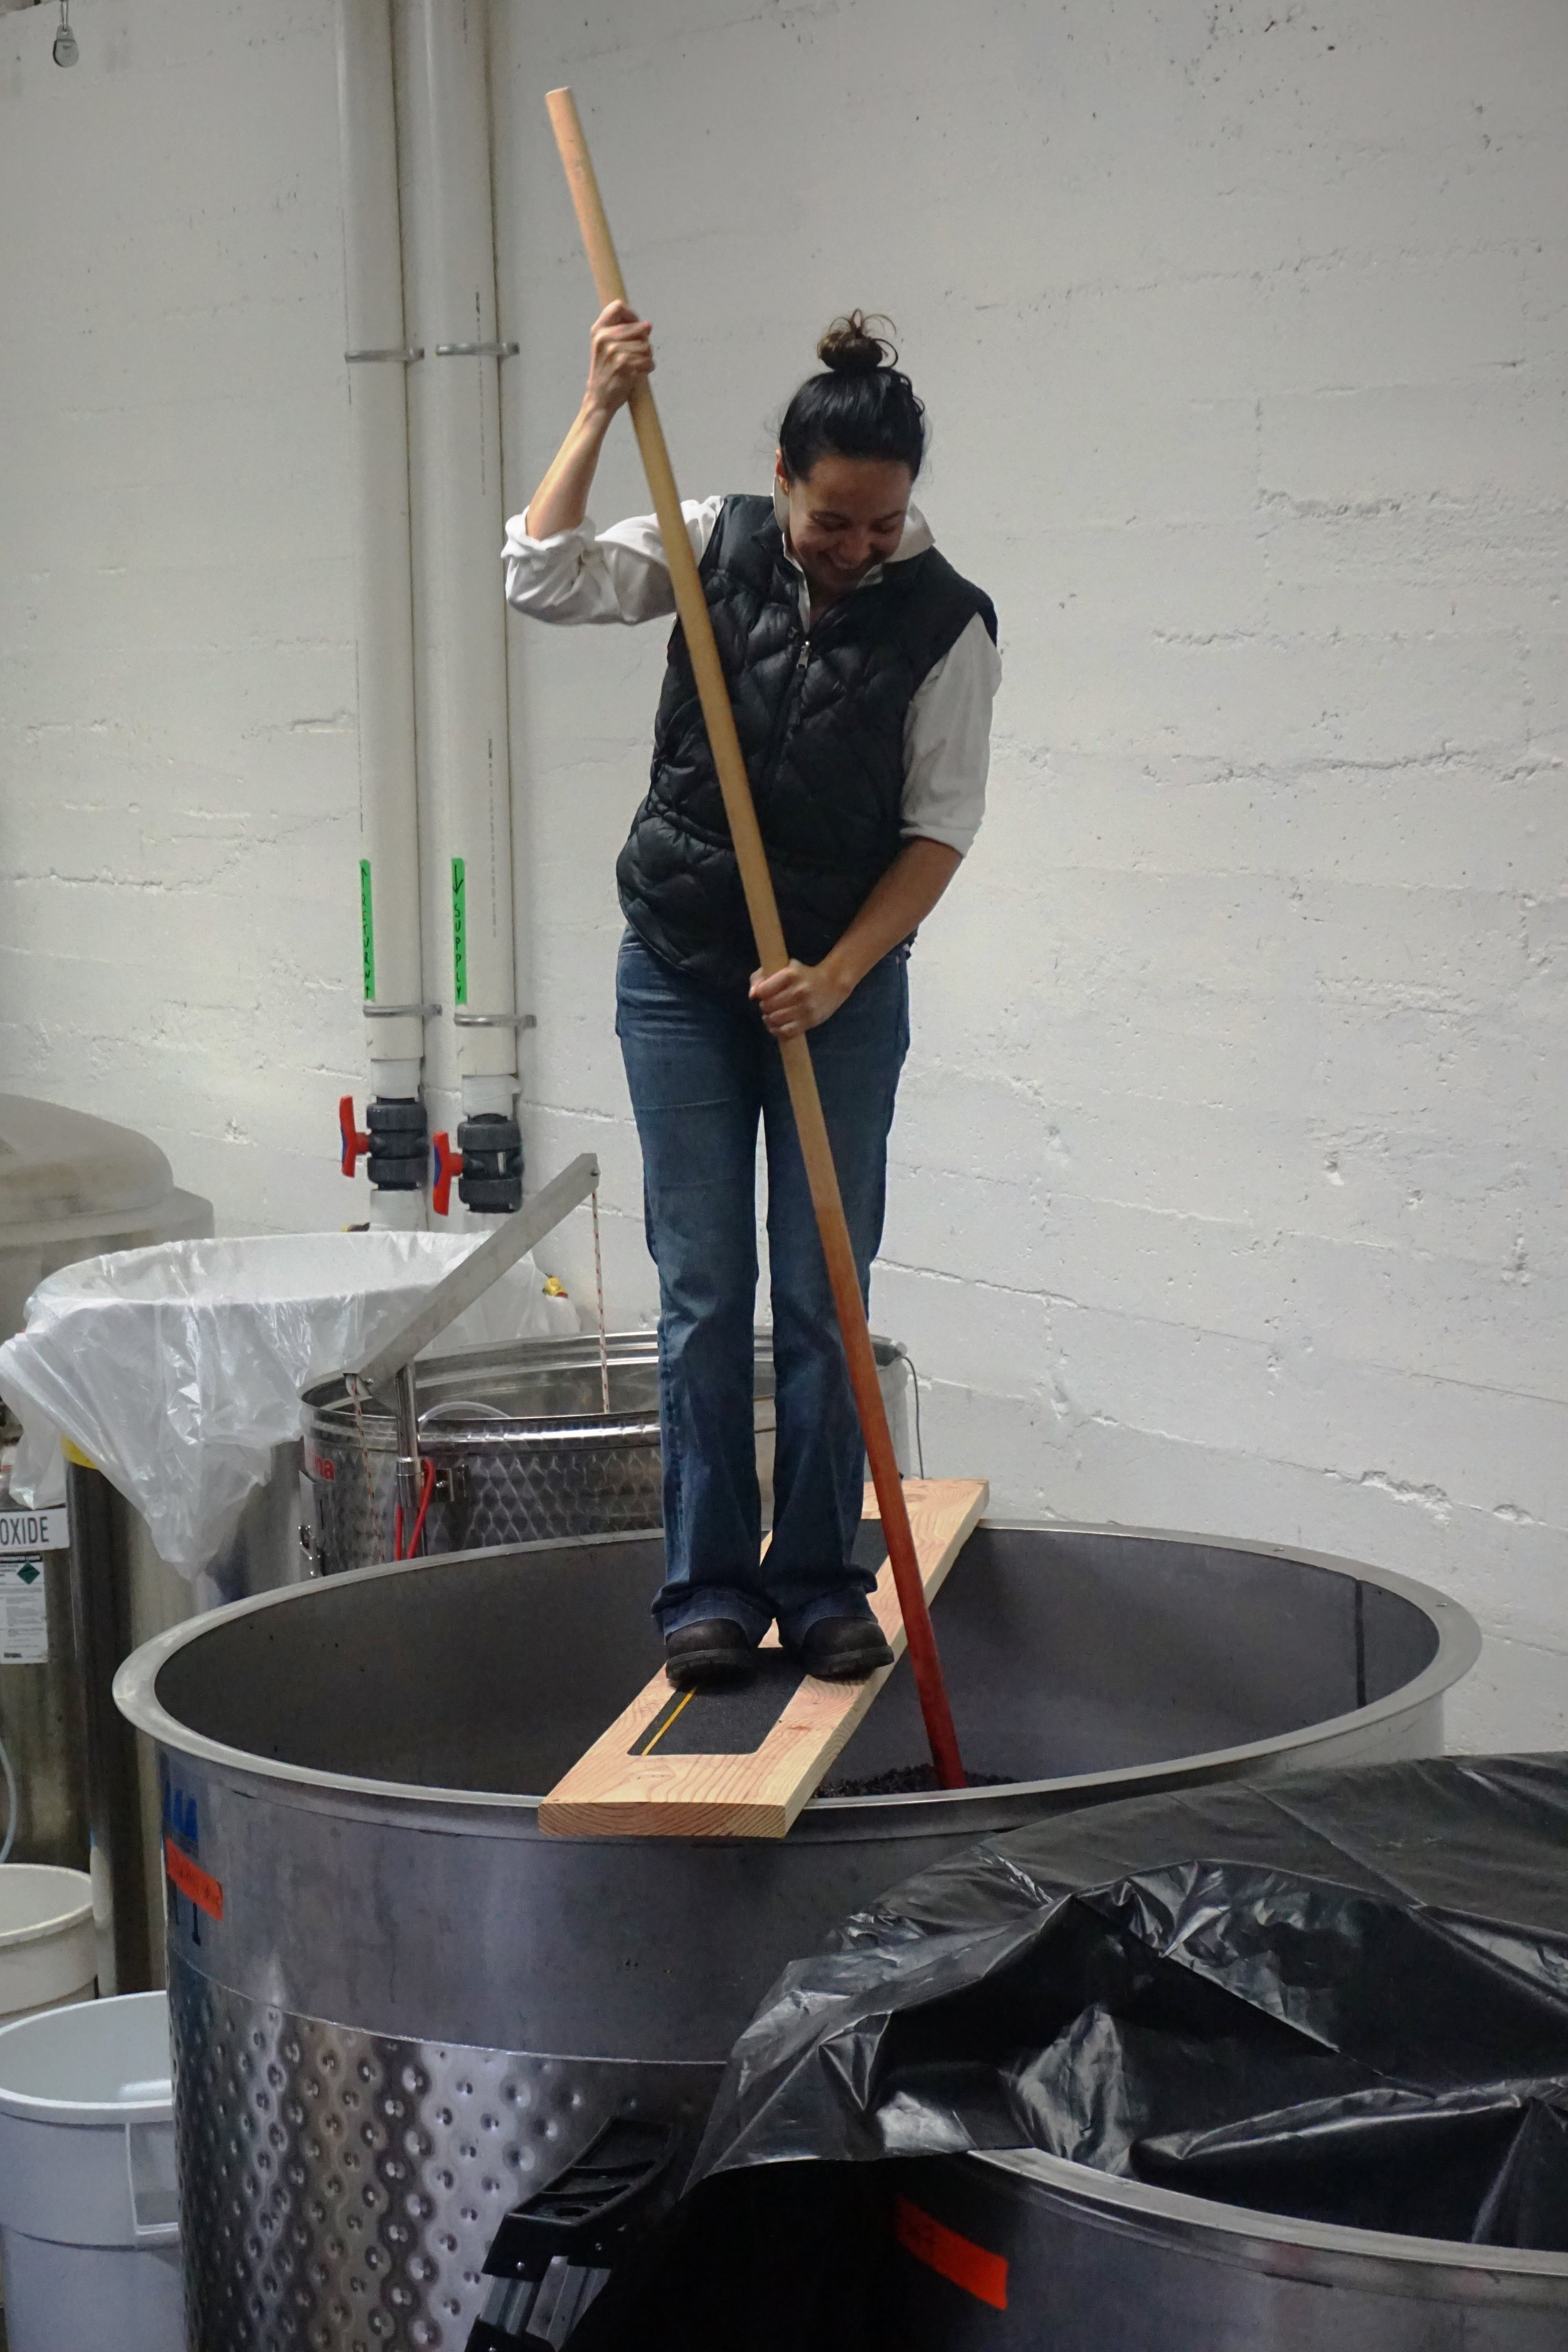 Norris has some serious abs and biceps to make punching down the grapes look as easy as she does. Standing a good six feet in the air on a foot-wide board with a plunger attached to a very long pole attempting to push it through the cap of grape solids that form on the top of the fermentation vessel with the bottom of the tank as the goal is a crazy core workout. Viki Eierdam